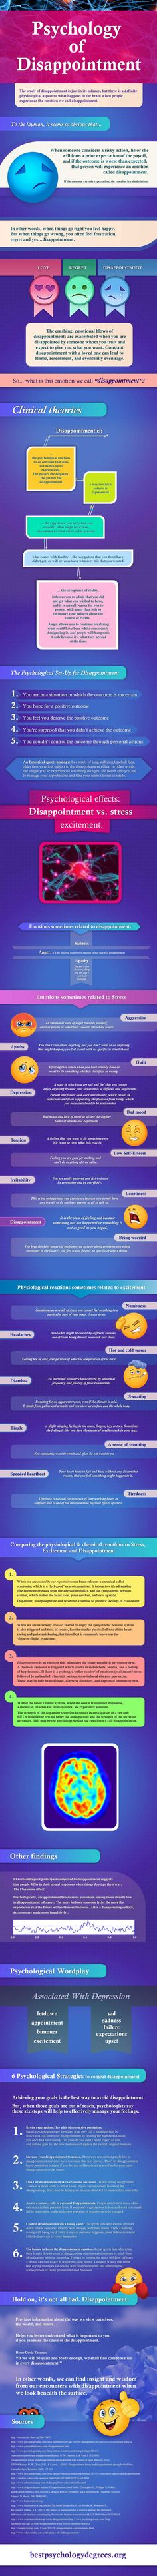 Psychology infographic & Advice The Psychology of Disappointment Infographic. Image Description The Psychology of Disappointment Infographic Therapy Tools, Art Therapy, Mental Training, Human Behavior, Psychology Facts, Applied Psychology, Emotional Intelligence, Disappointment, Personality Types